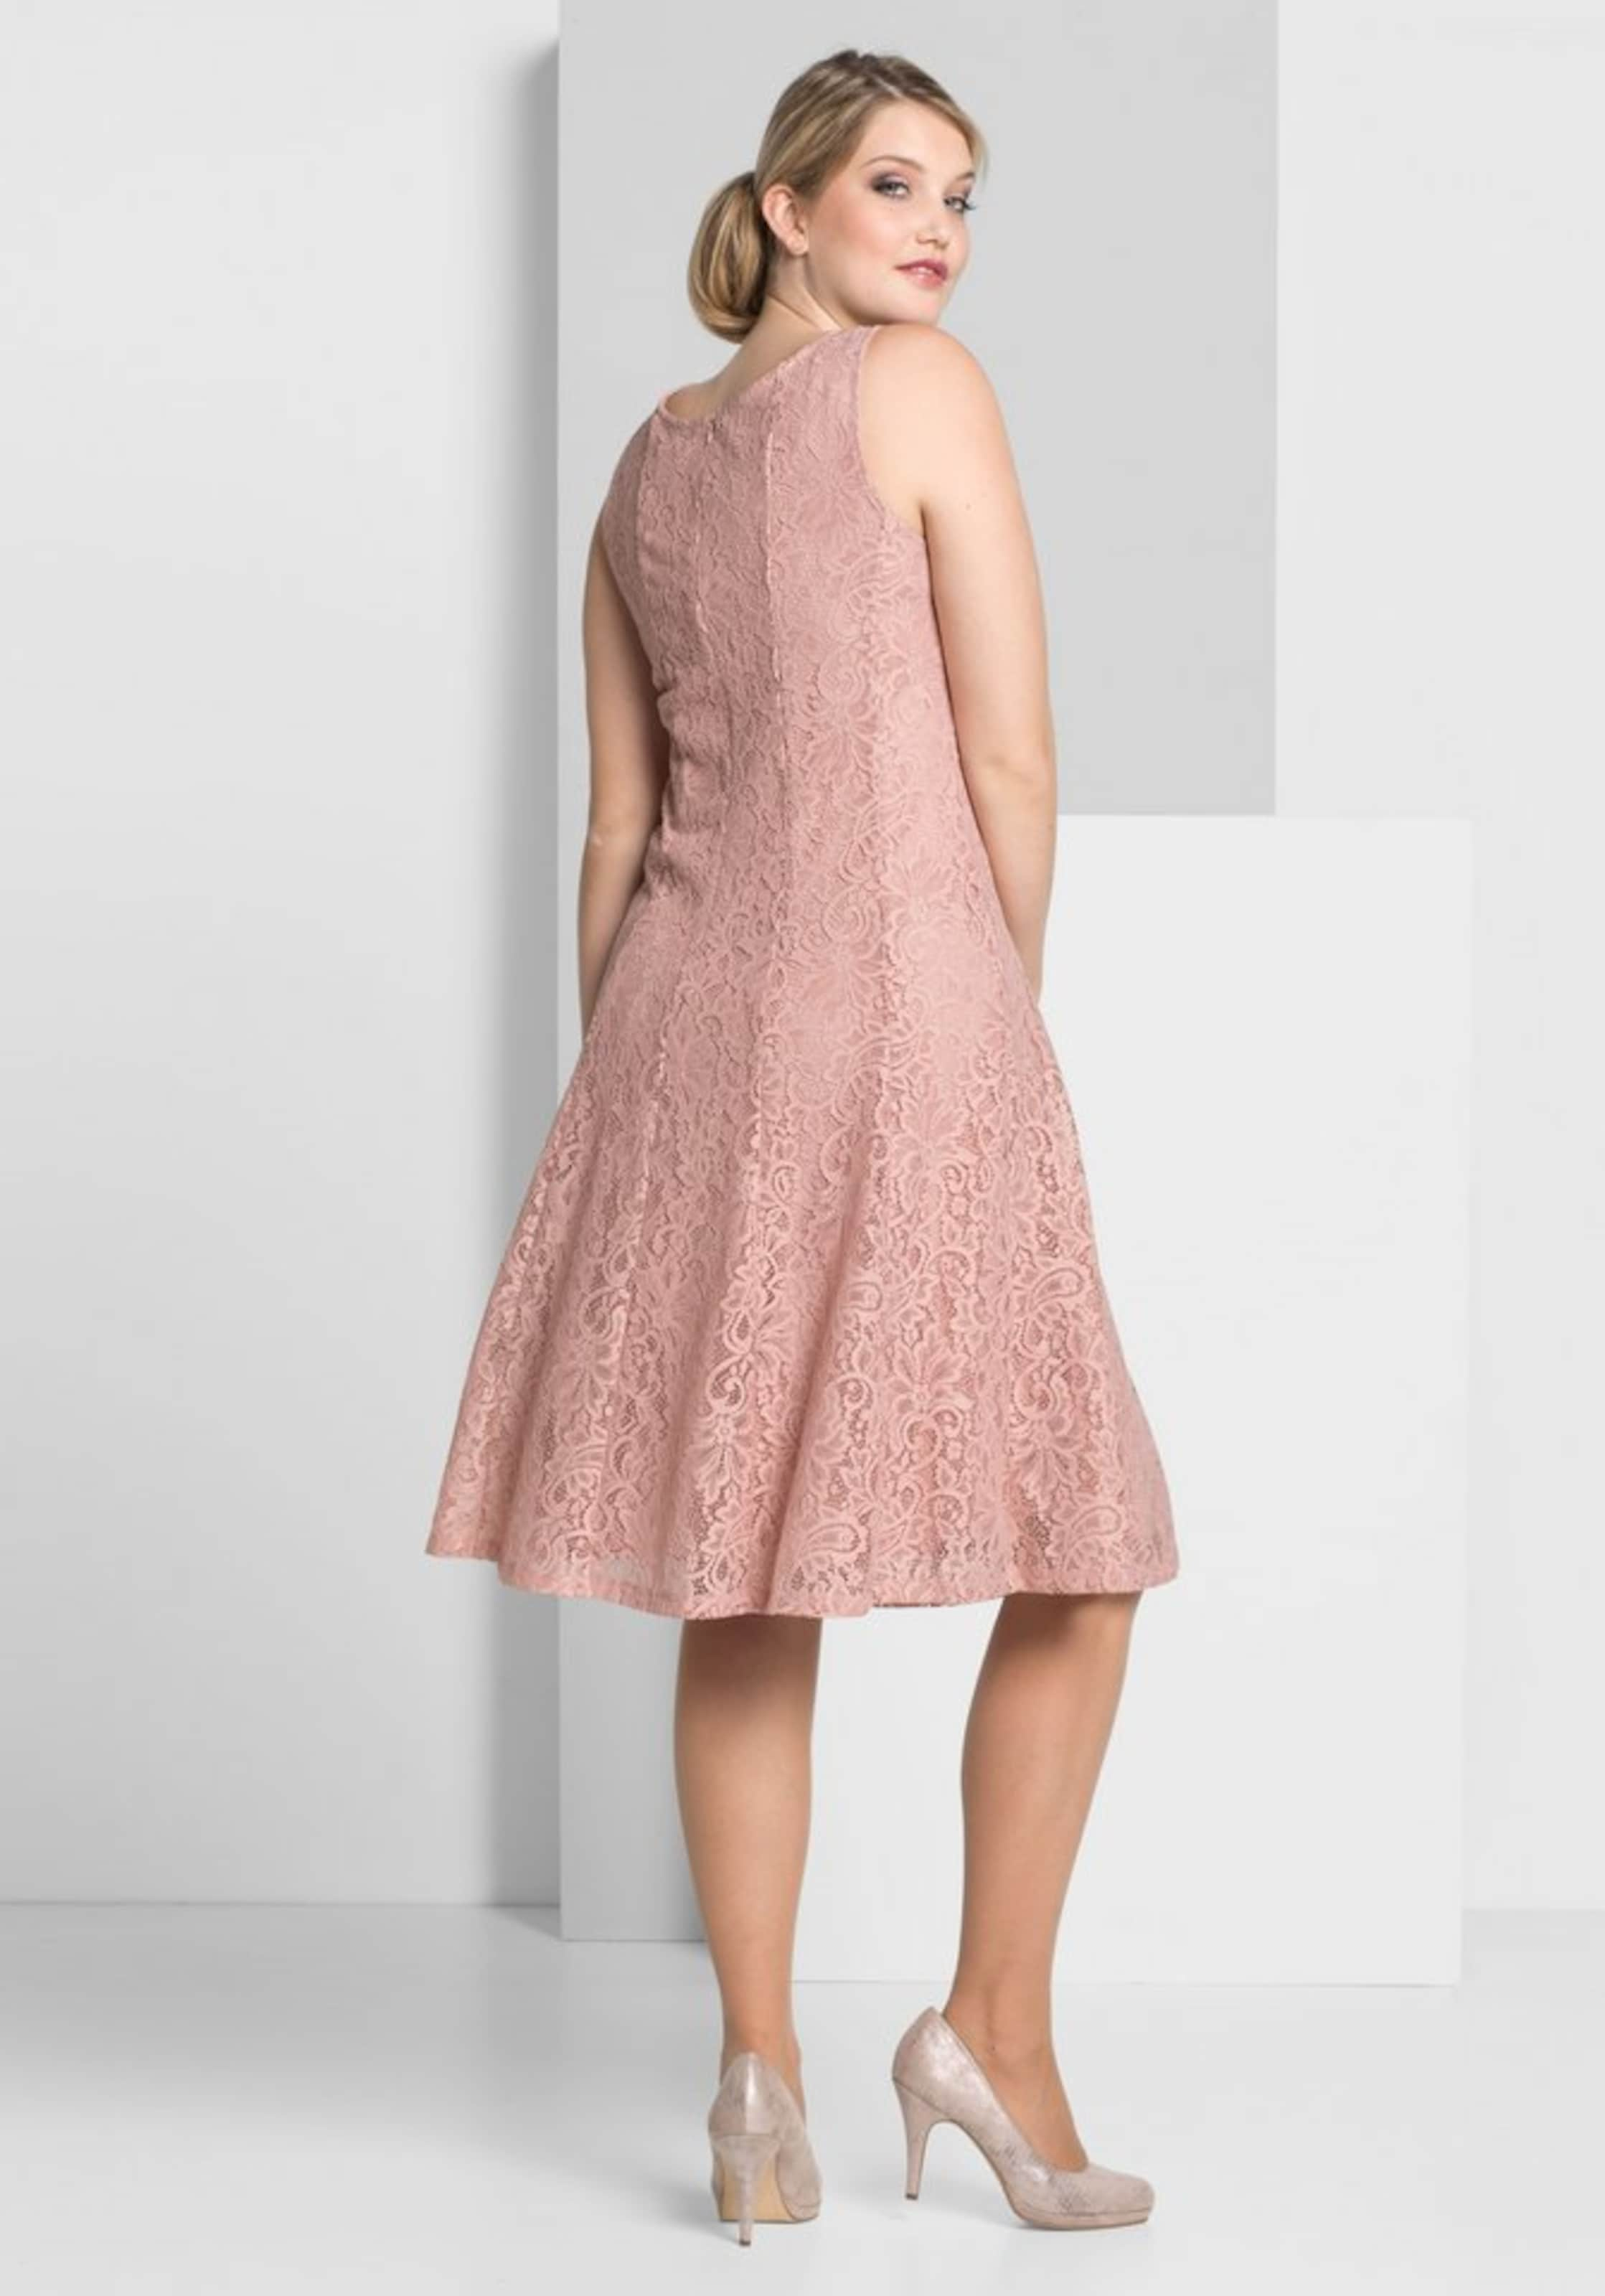 Style Style Sheego In Sheego Rosé Spitzenkleid Rosé In Spitzenkleid Spitzenkleid Style Sheego FTl3K1cJ